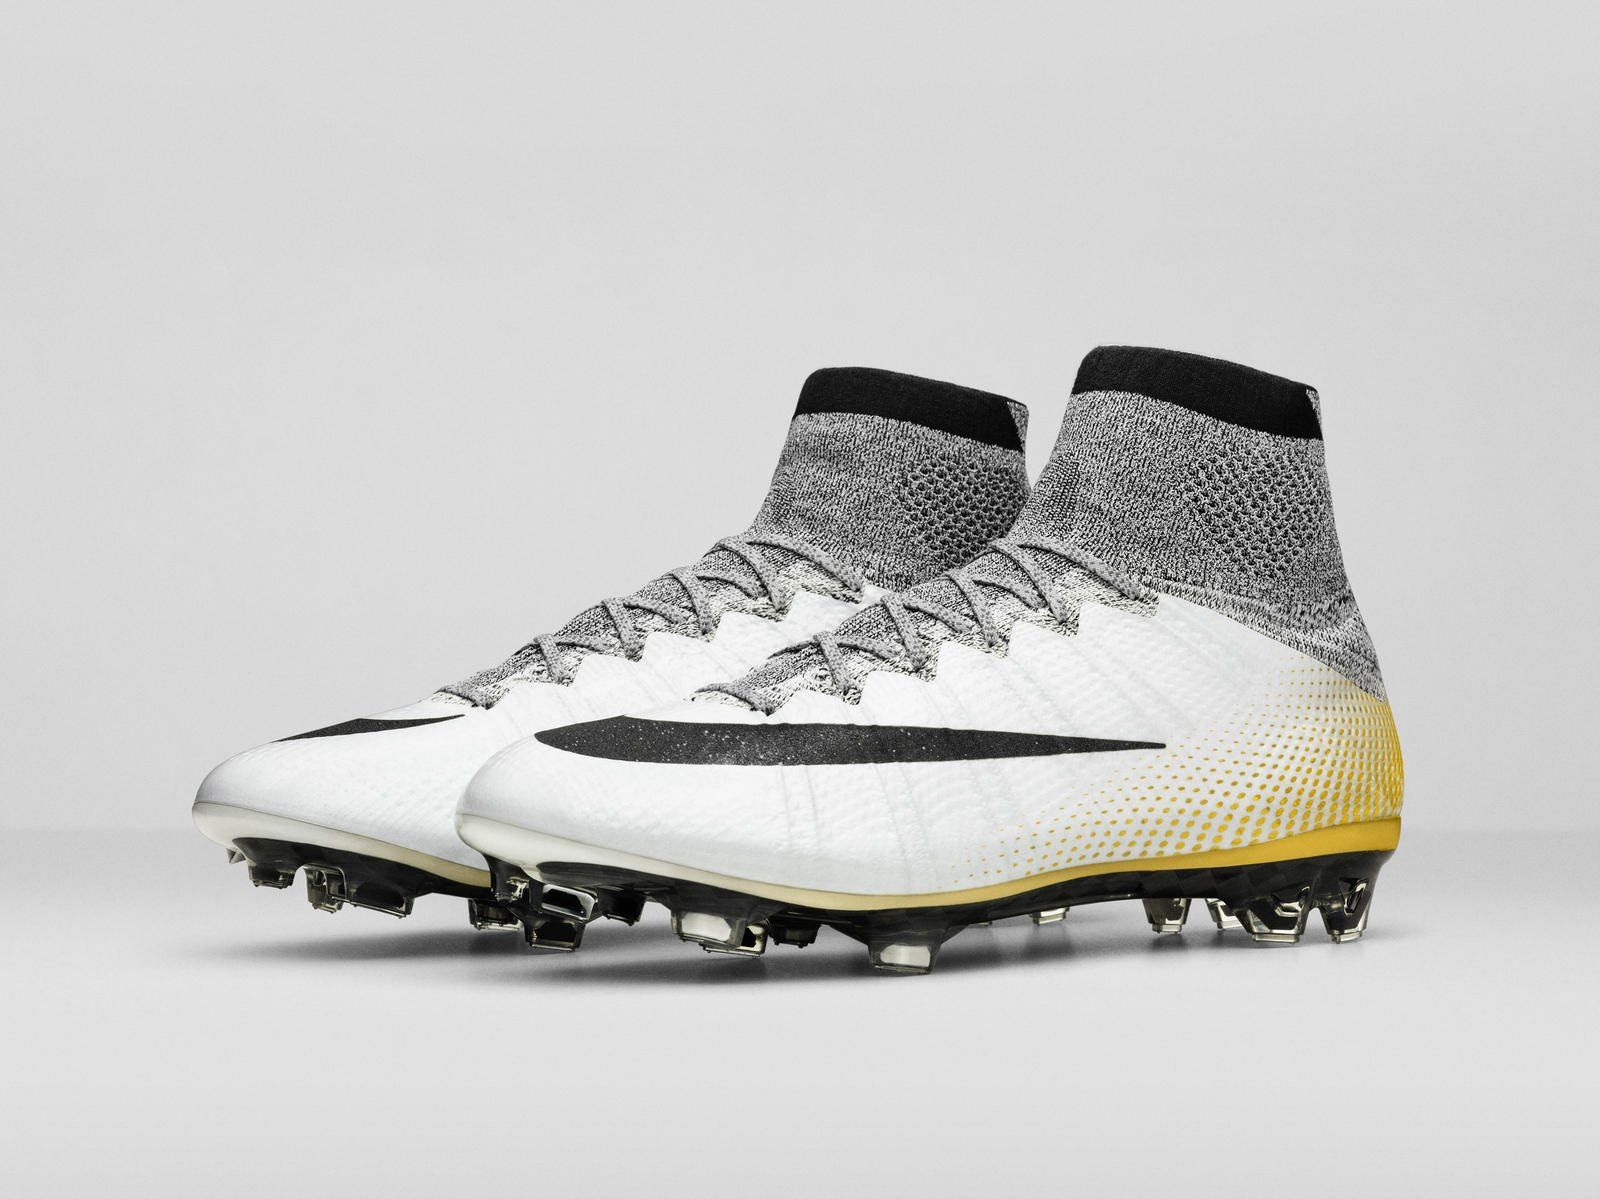 298a8c3e41e4fd Football Boots Nike Mercurial Superfly CR7 324K Gold.  Real  Madrid ...